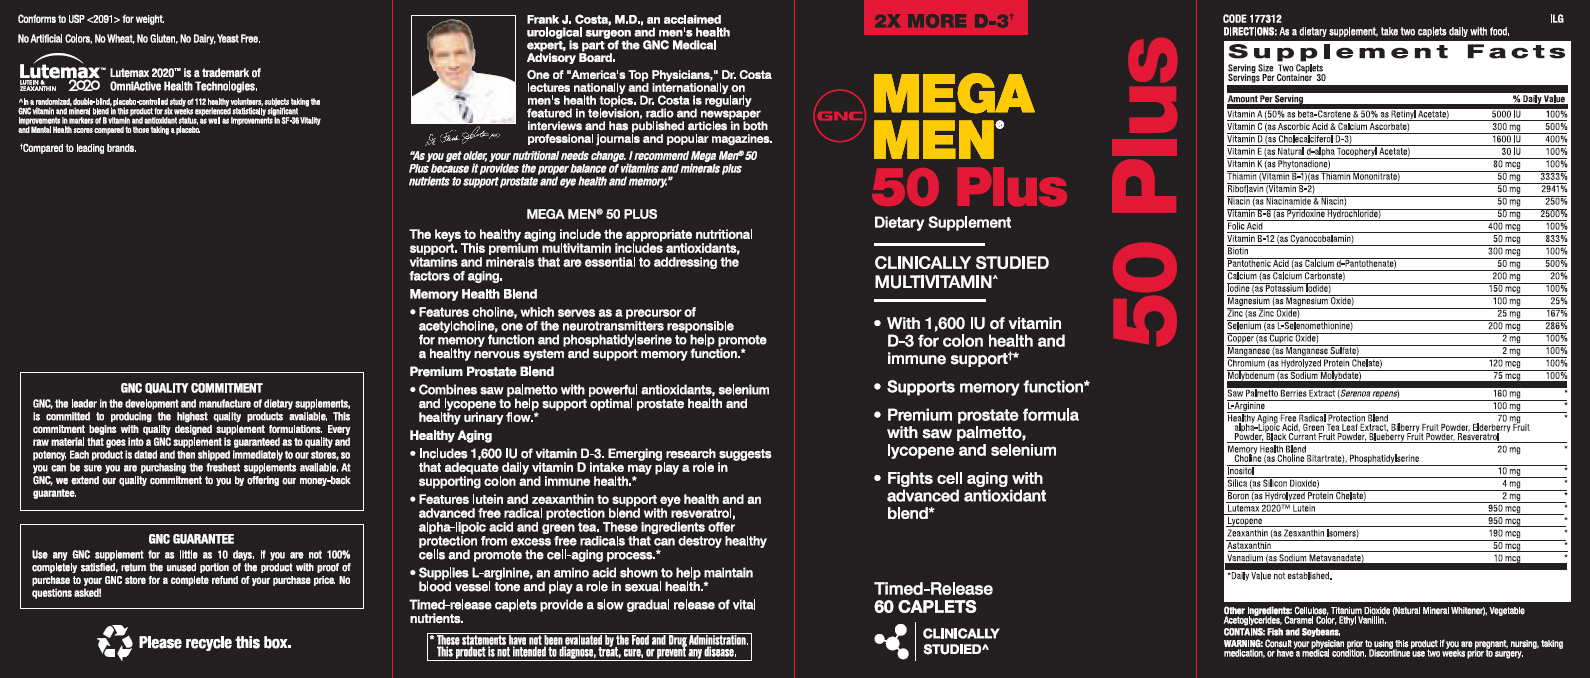 mega-men-50plus.jpg